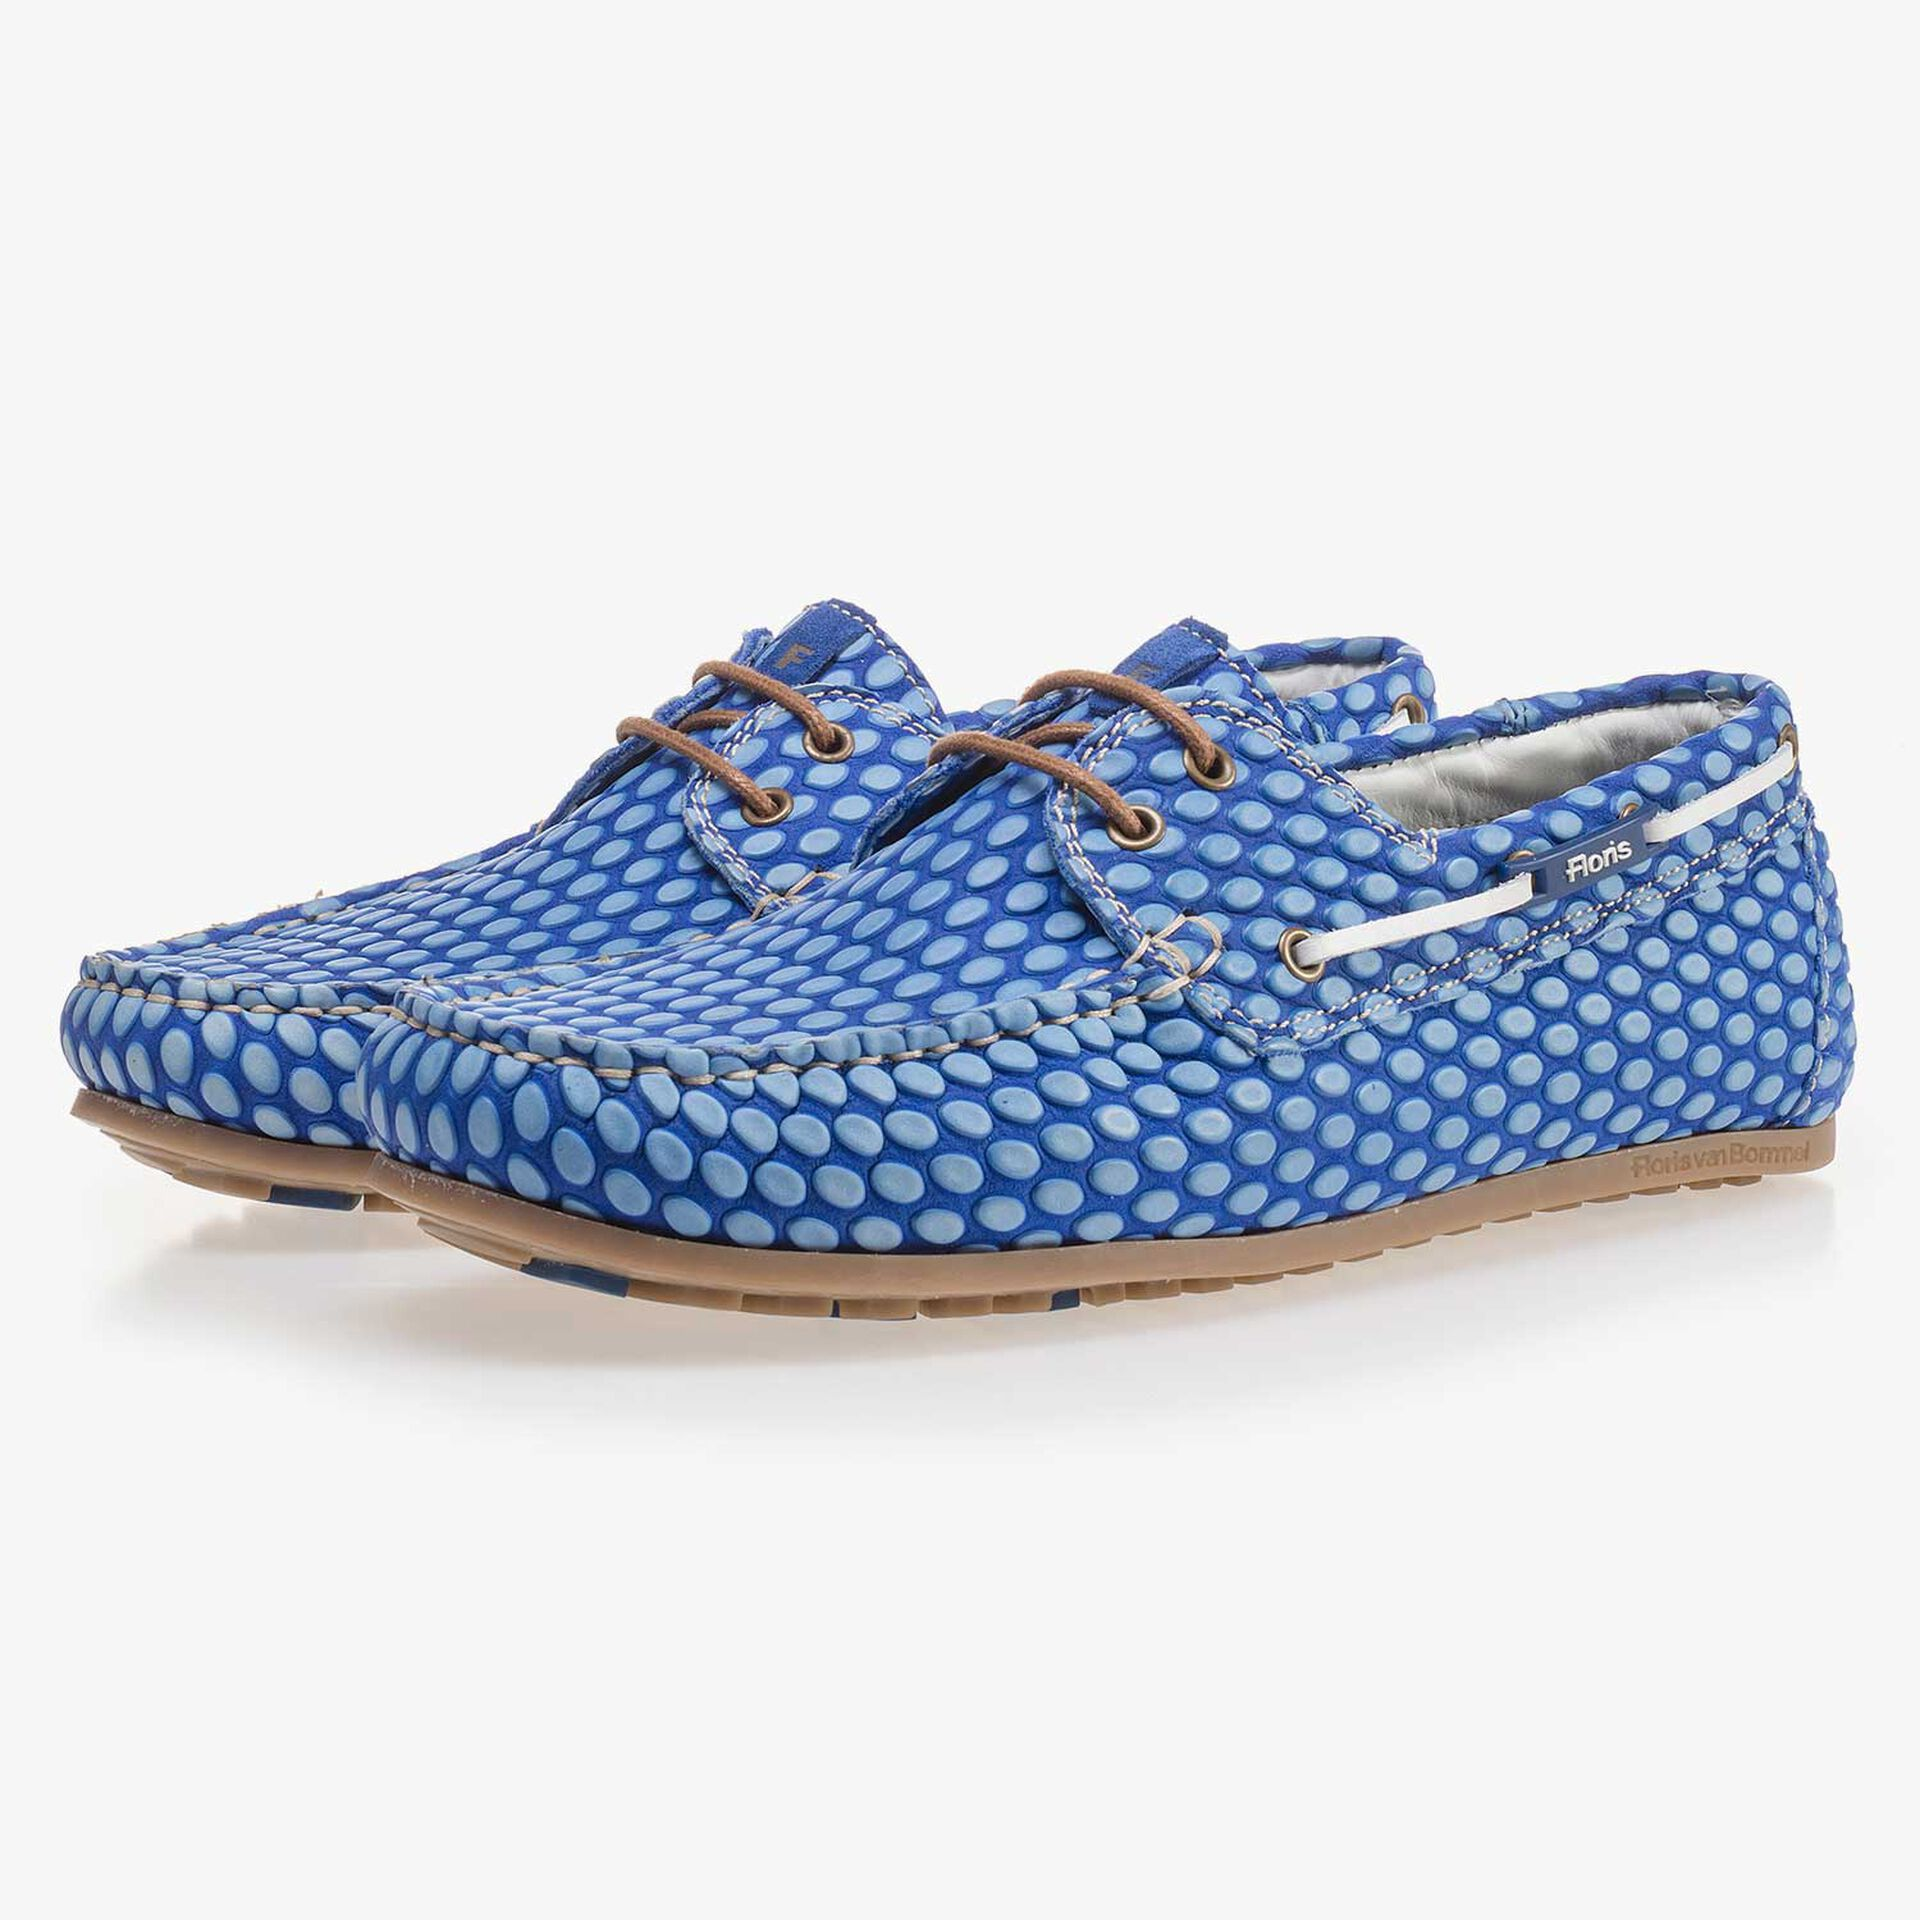 Cobalt blue, printed leather boat shoe